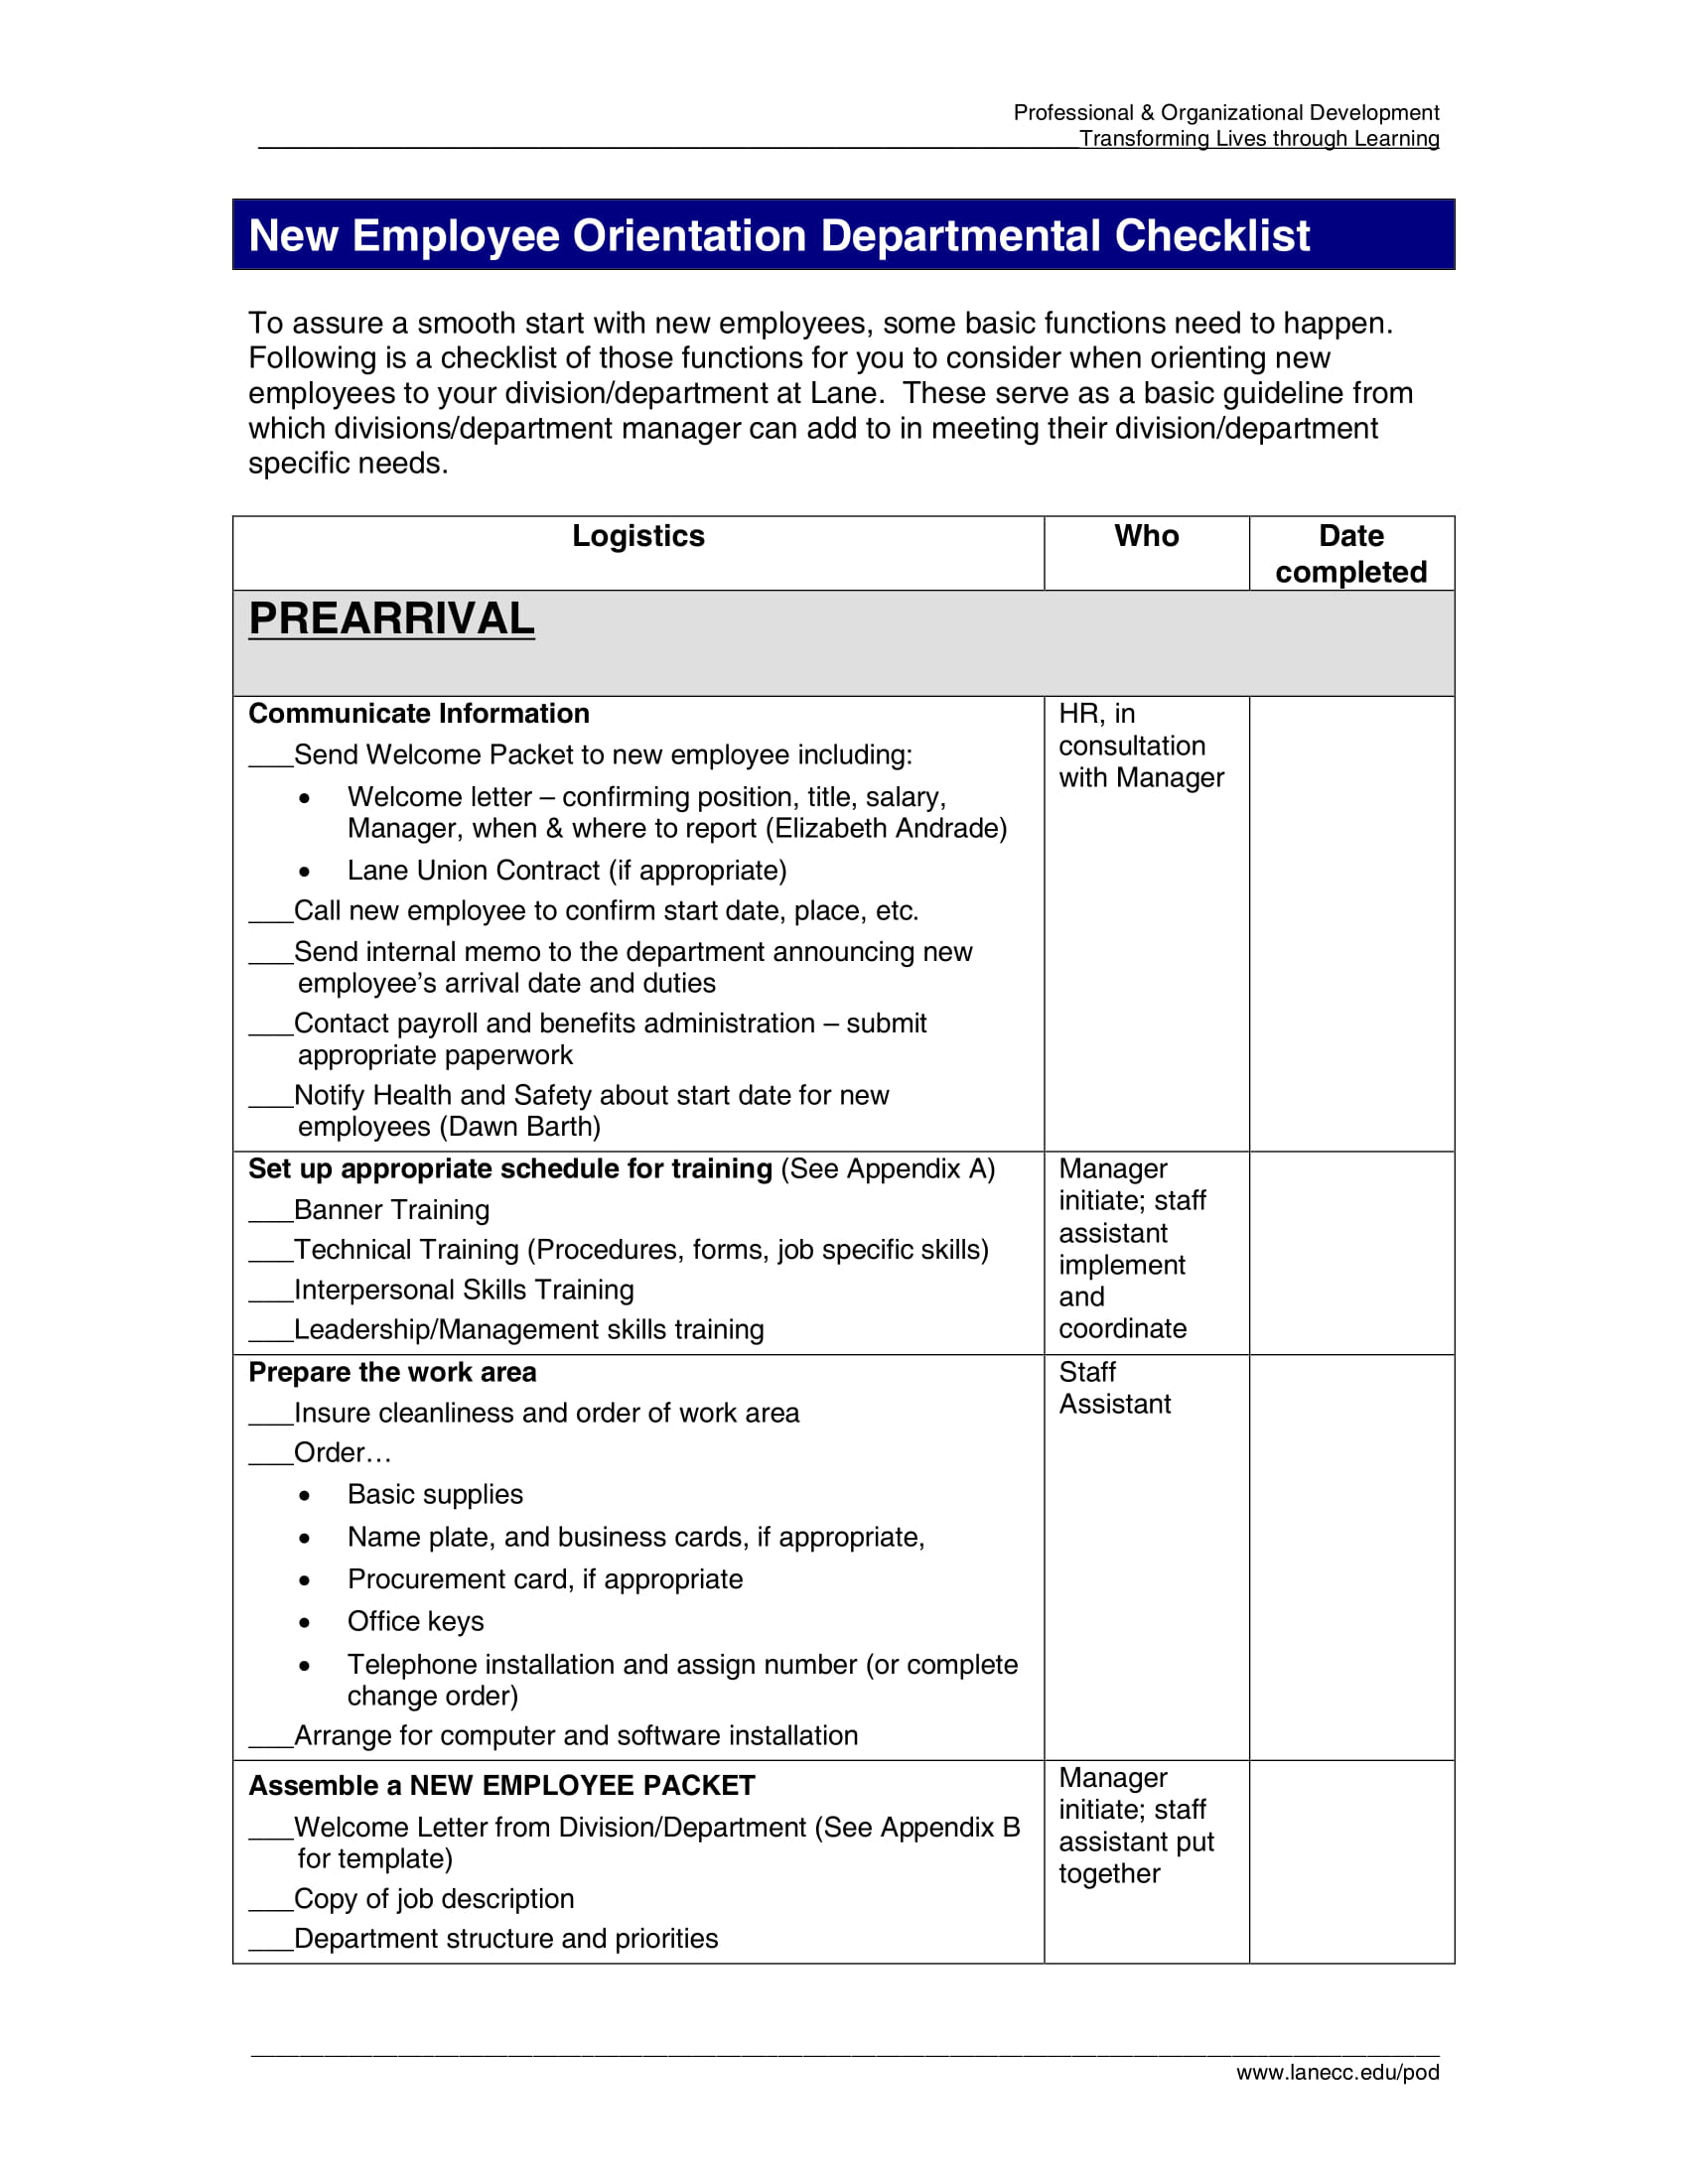 New Employee Orientation Program Checklist  Pdf